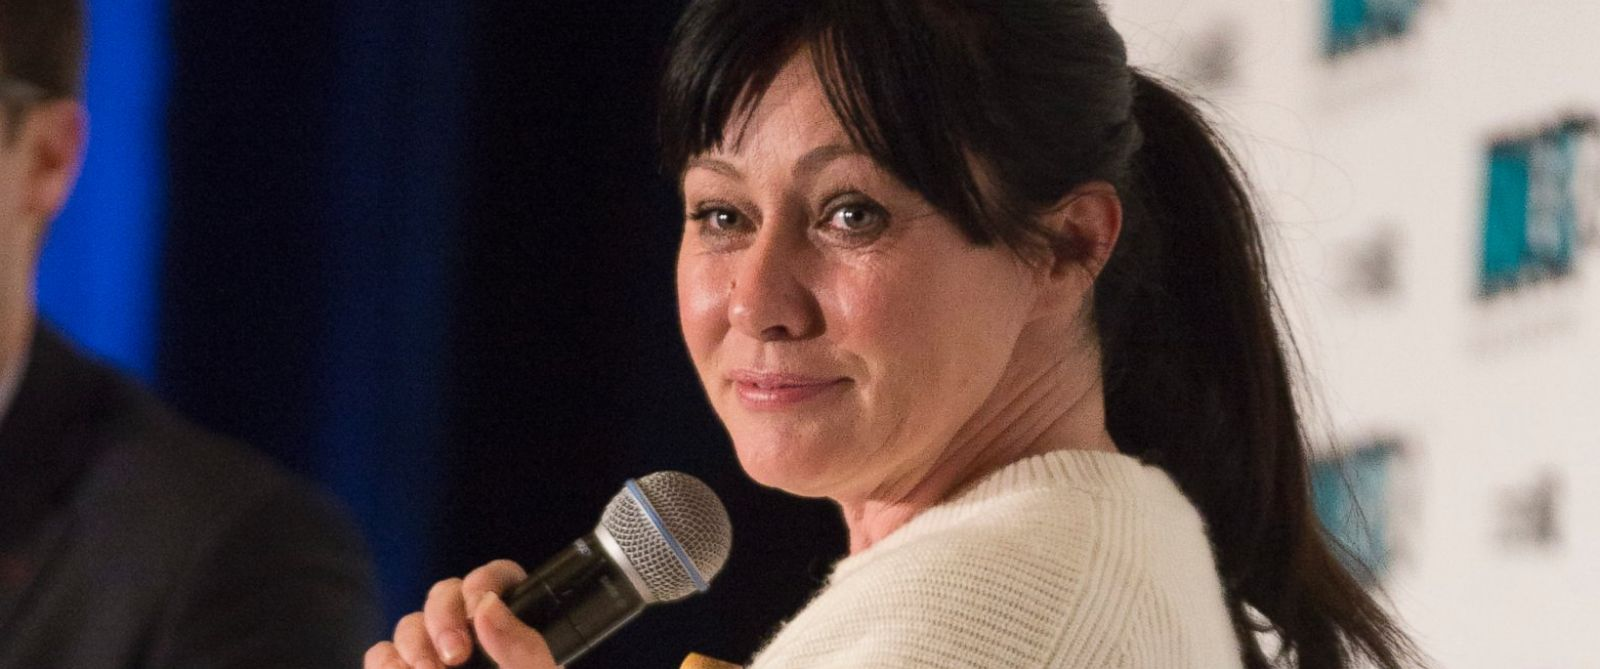 photo actress shannen doherty speaks at the fan expo vancouver 2015